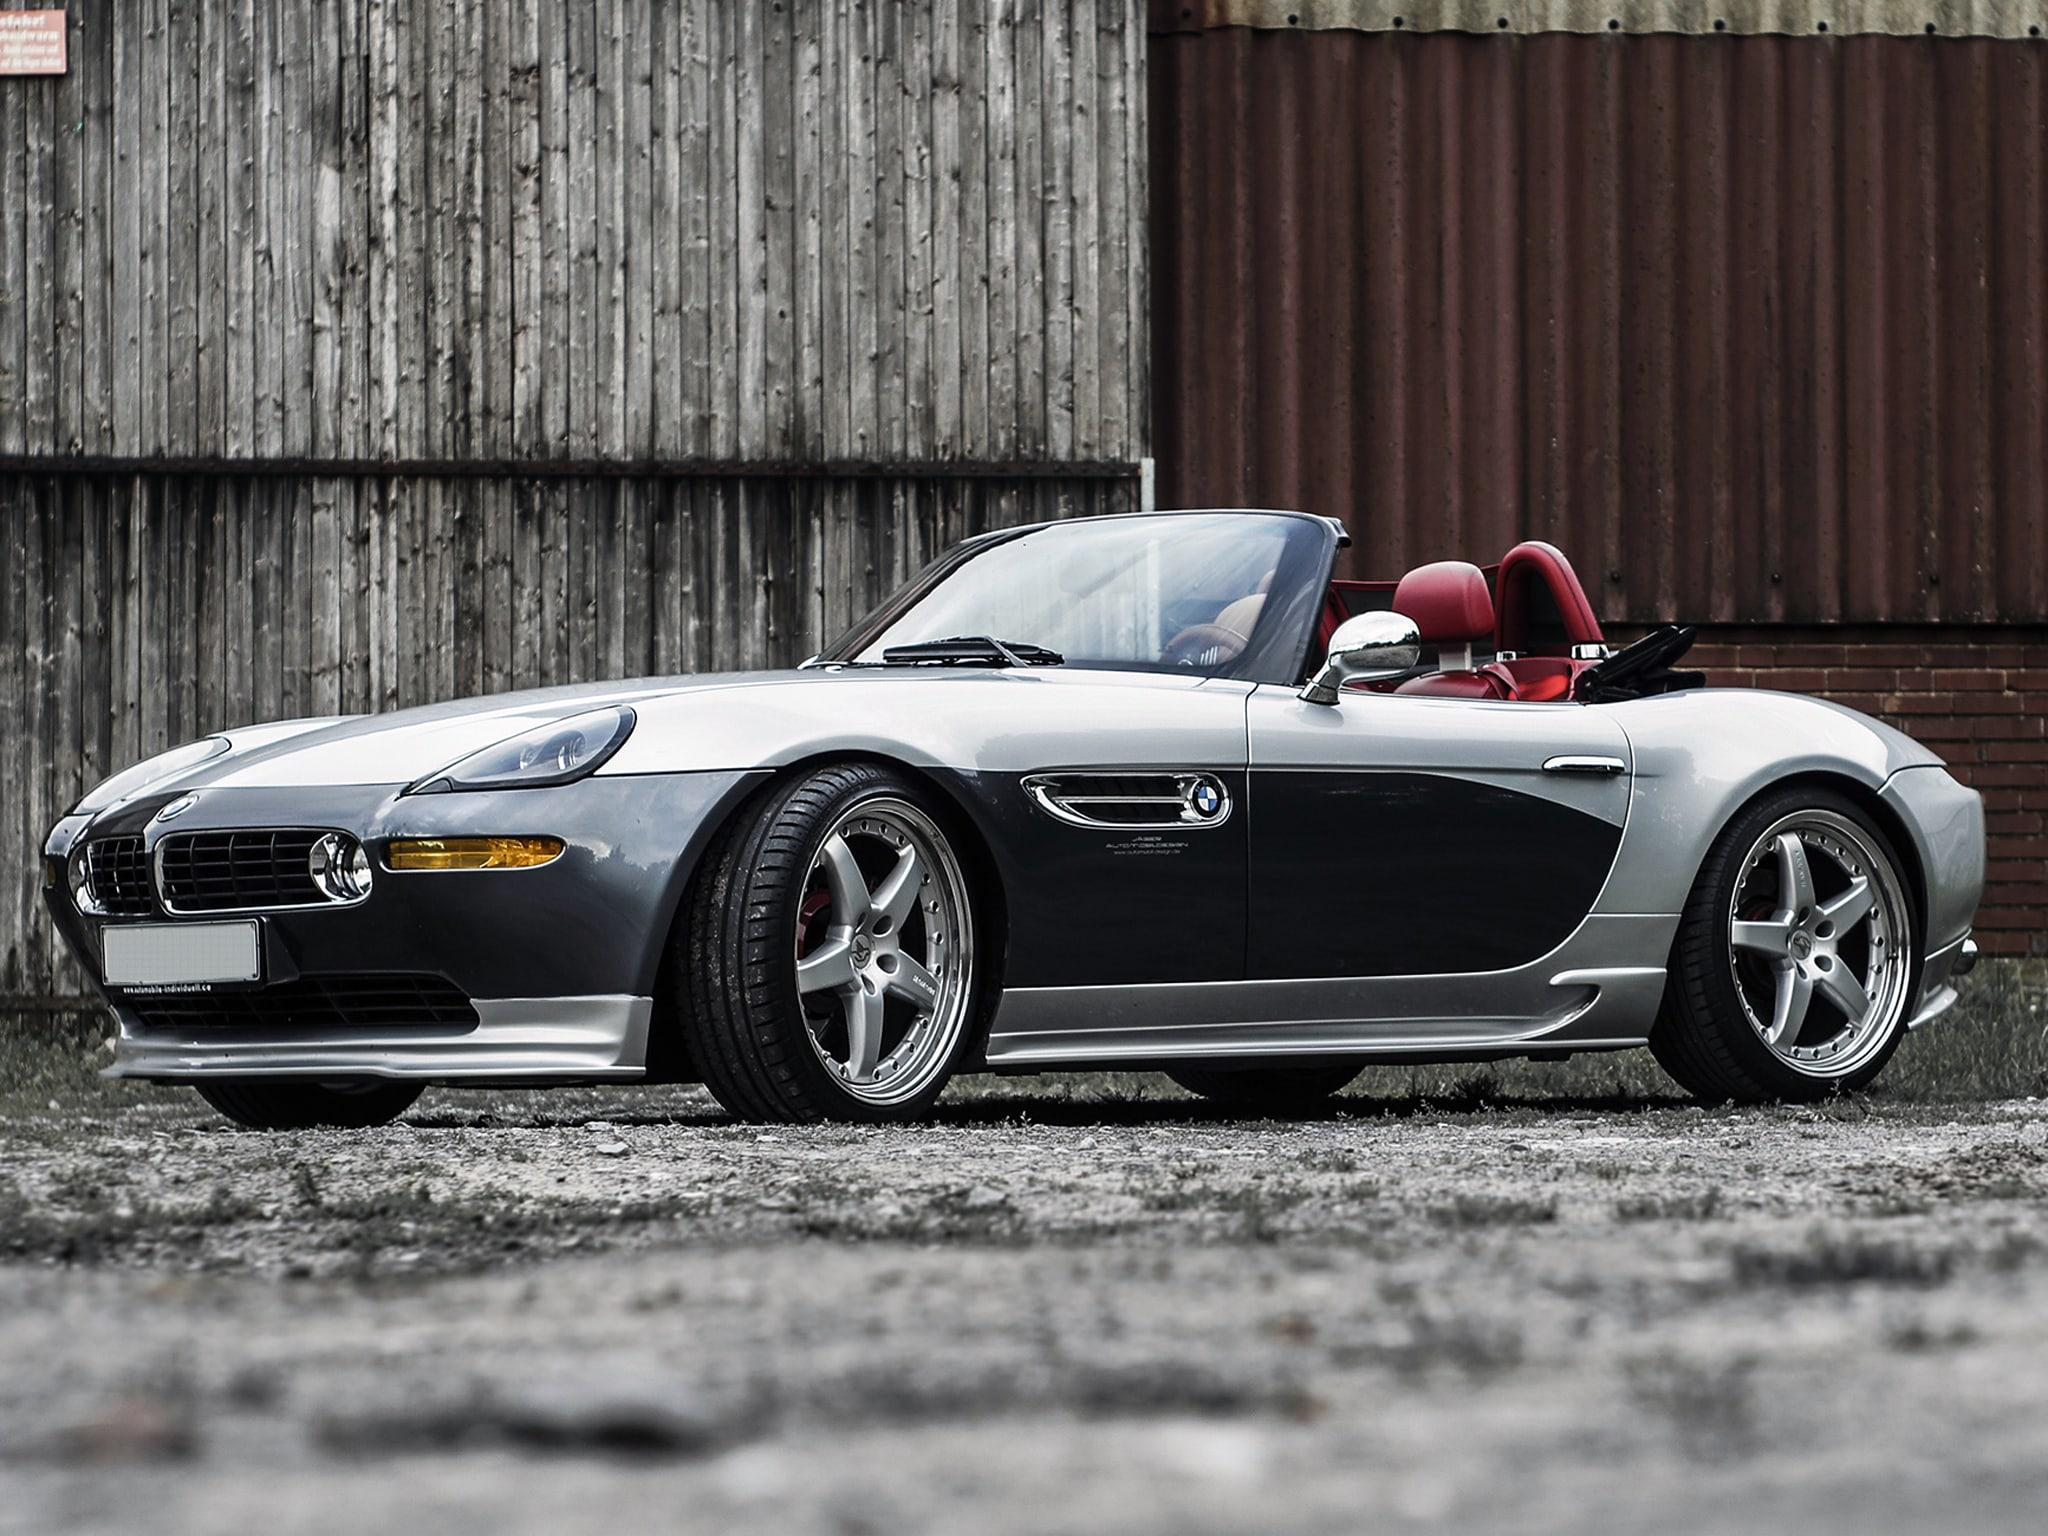 BMW Z8 Wallpapers - Wallpaper Cave